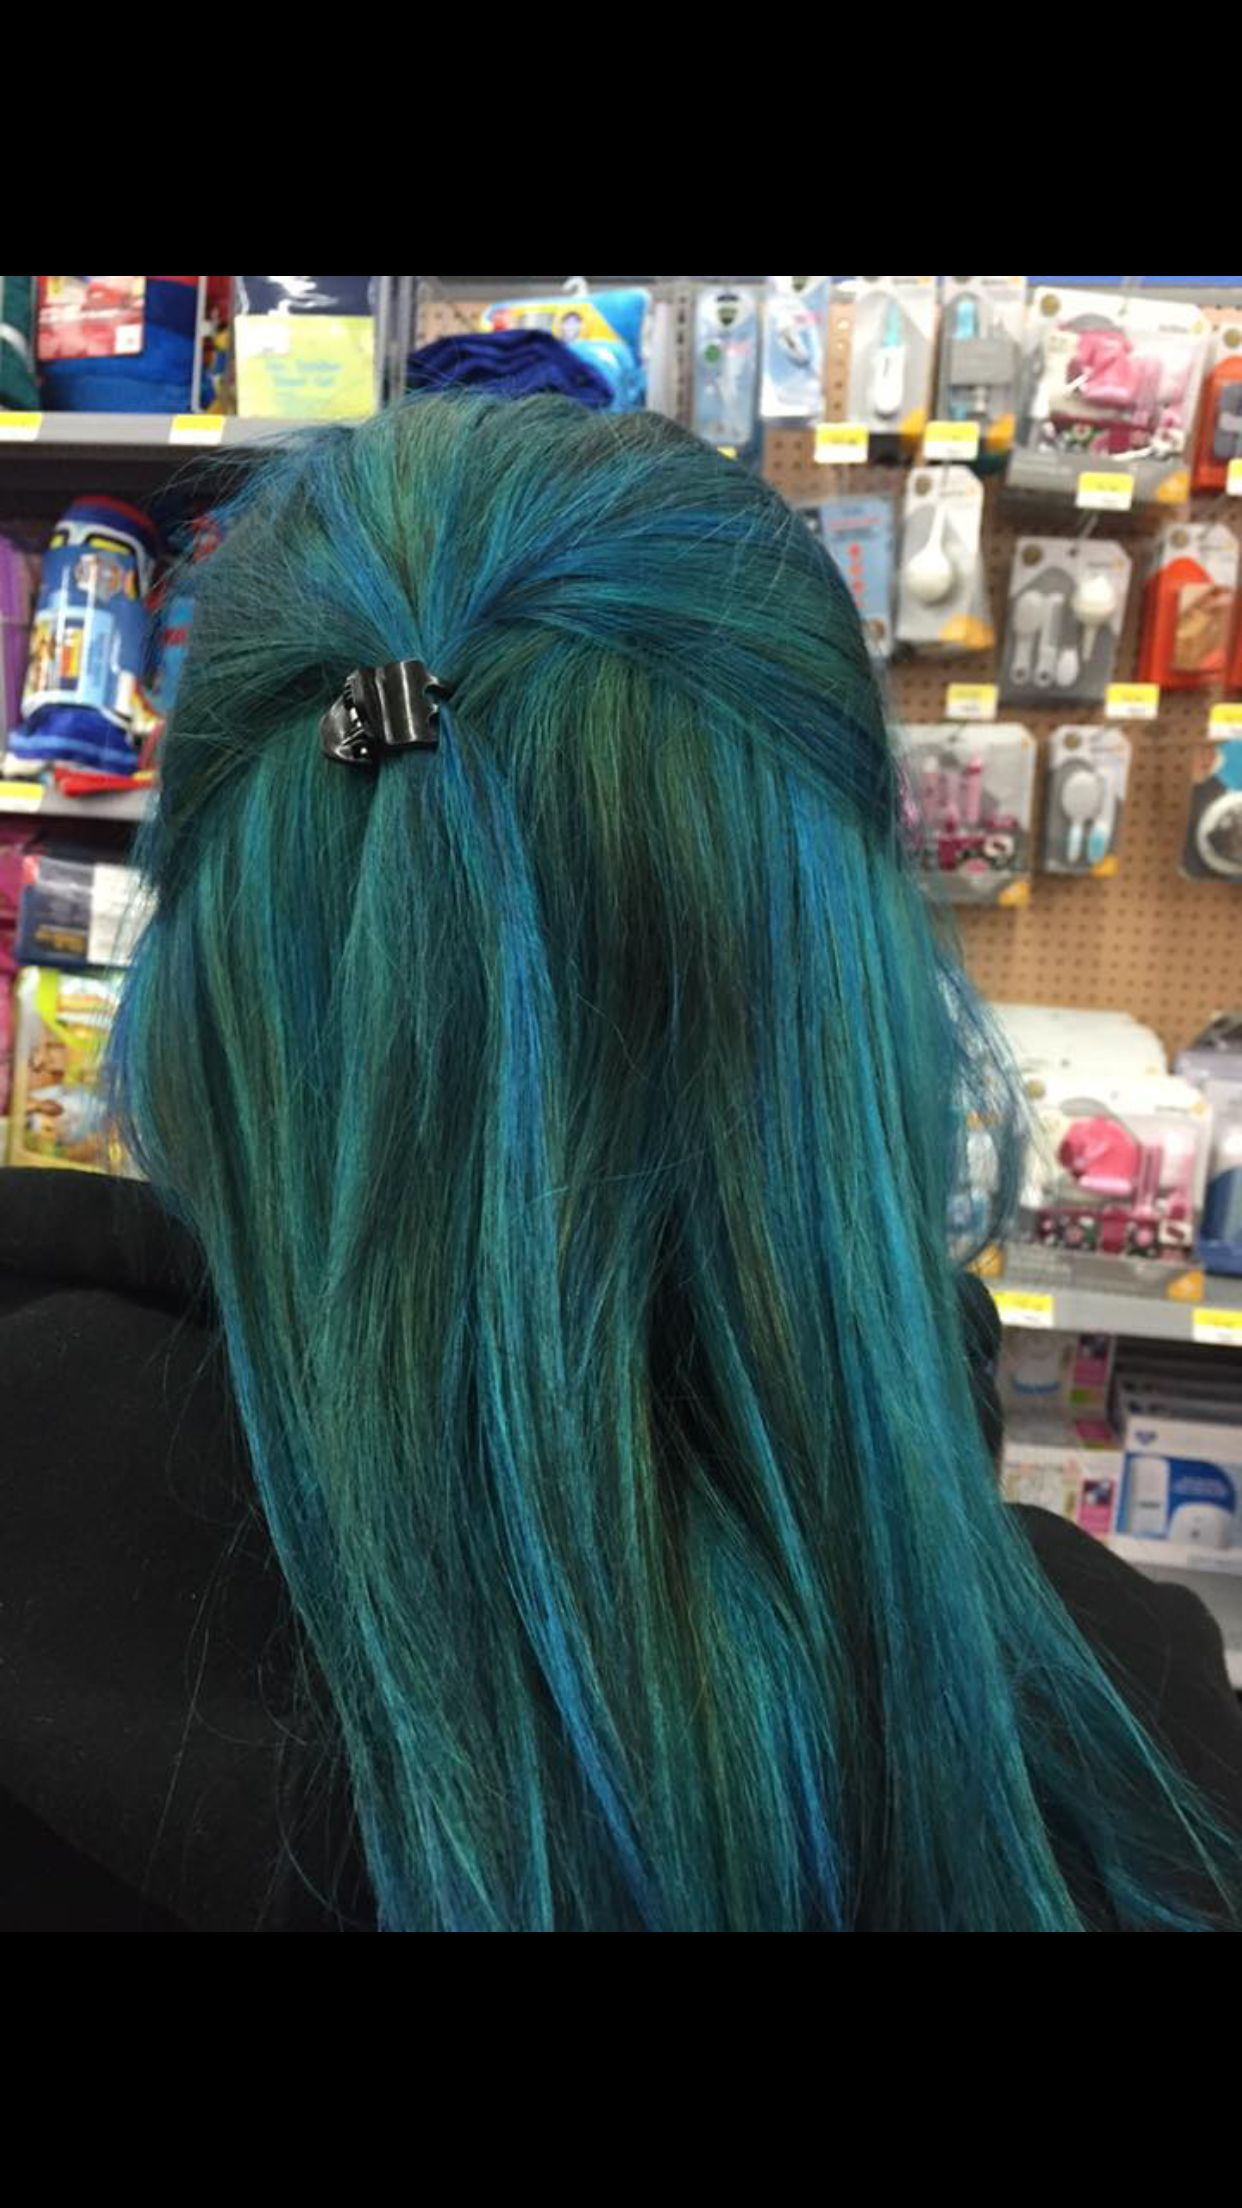 Mermaid hair ion brilliance brights semi permanent collection